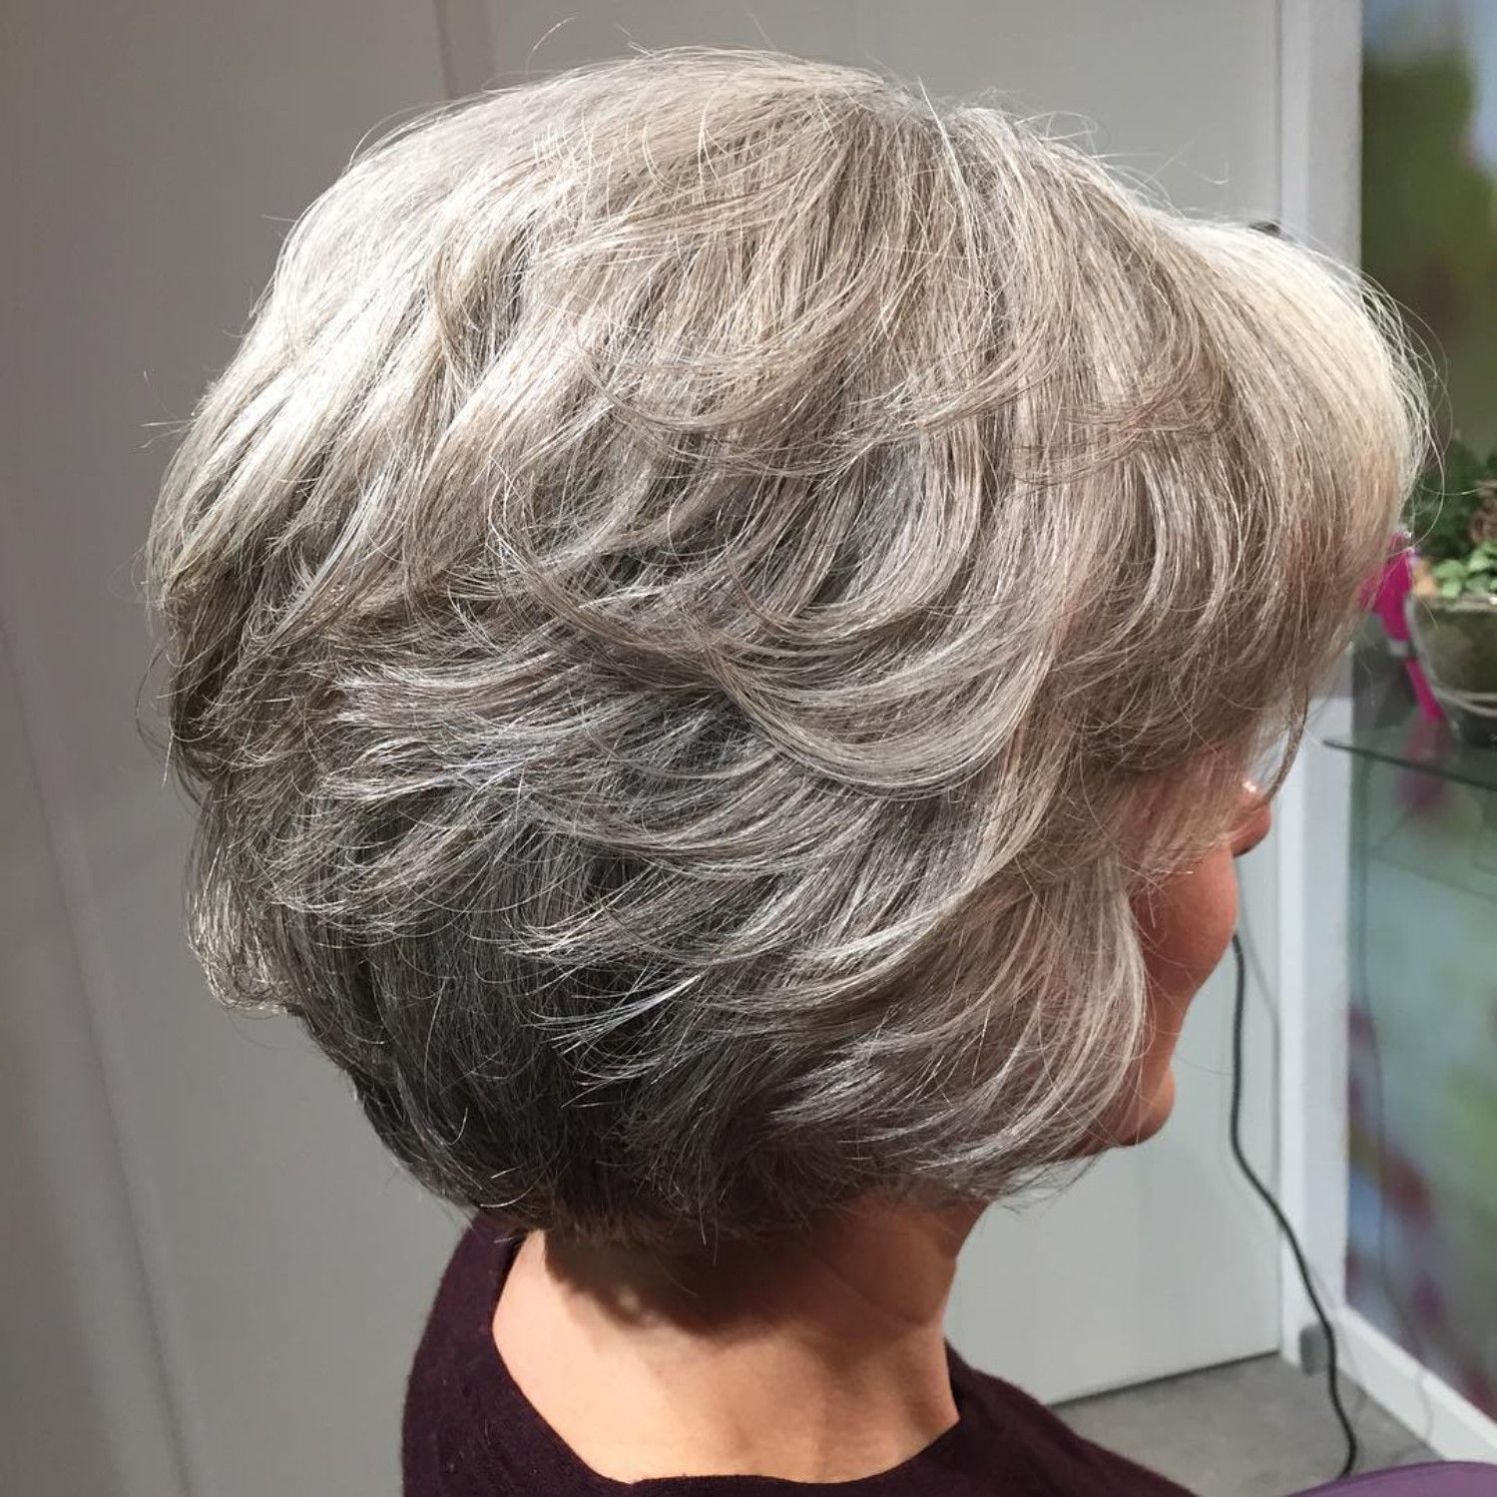 Medium haircuts for men with thick hair  classy and simple short hairstyles for women over   what the